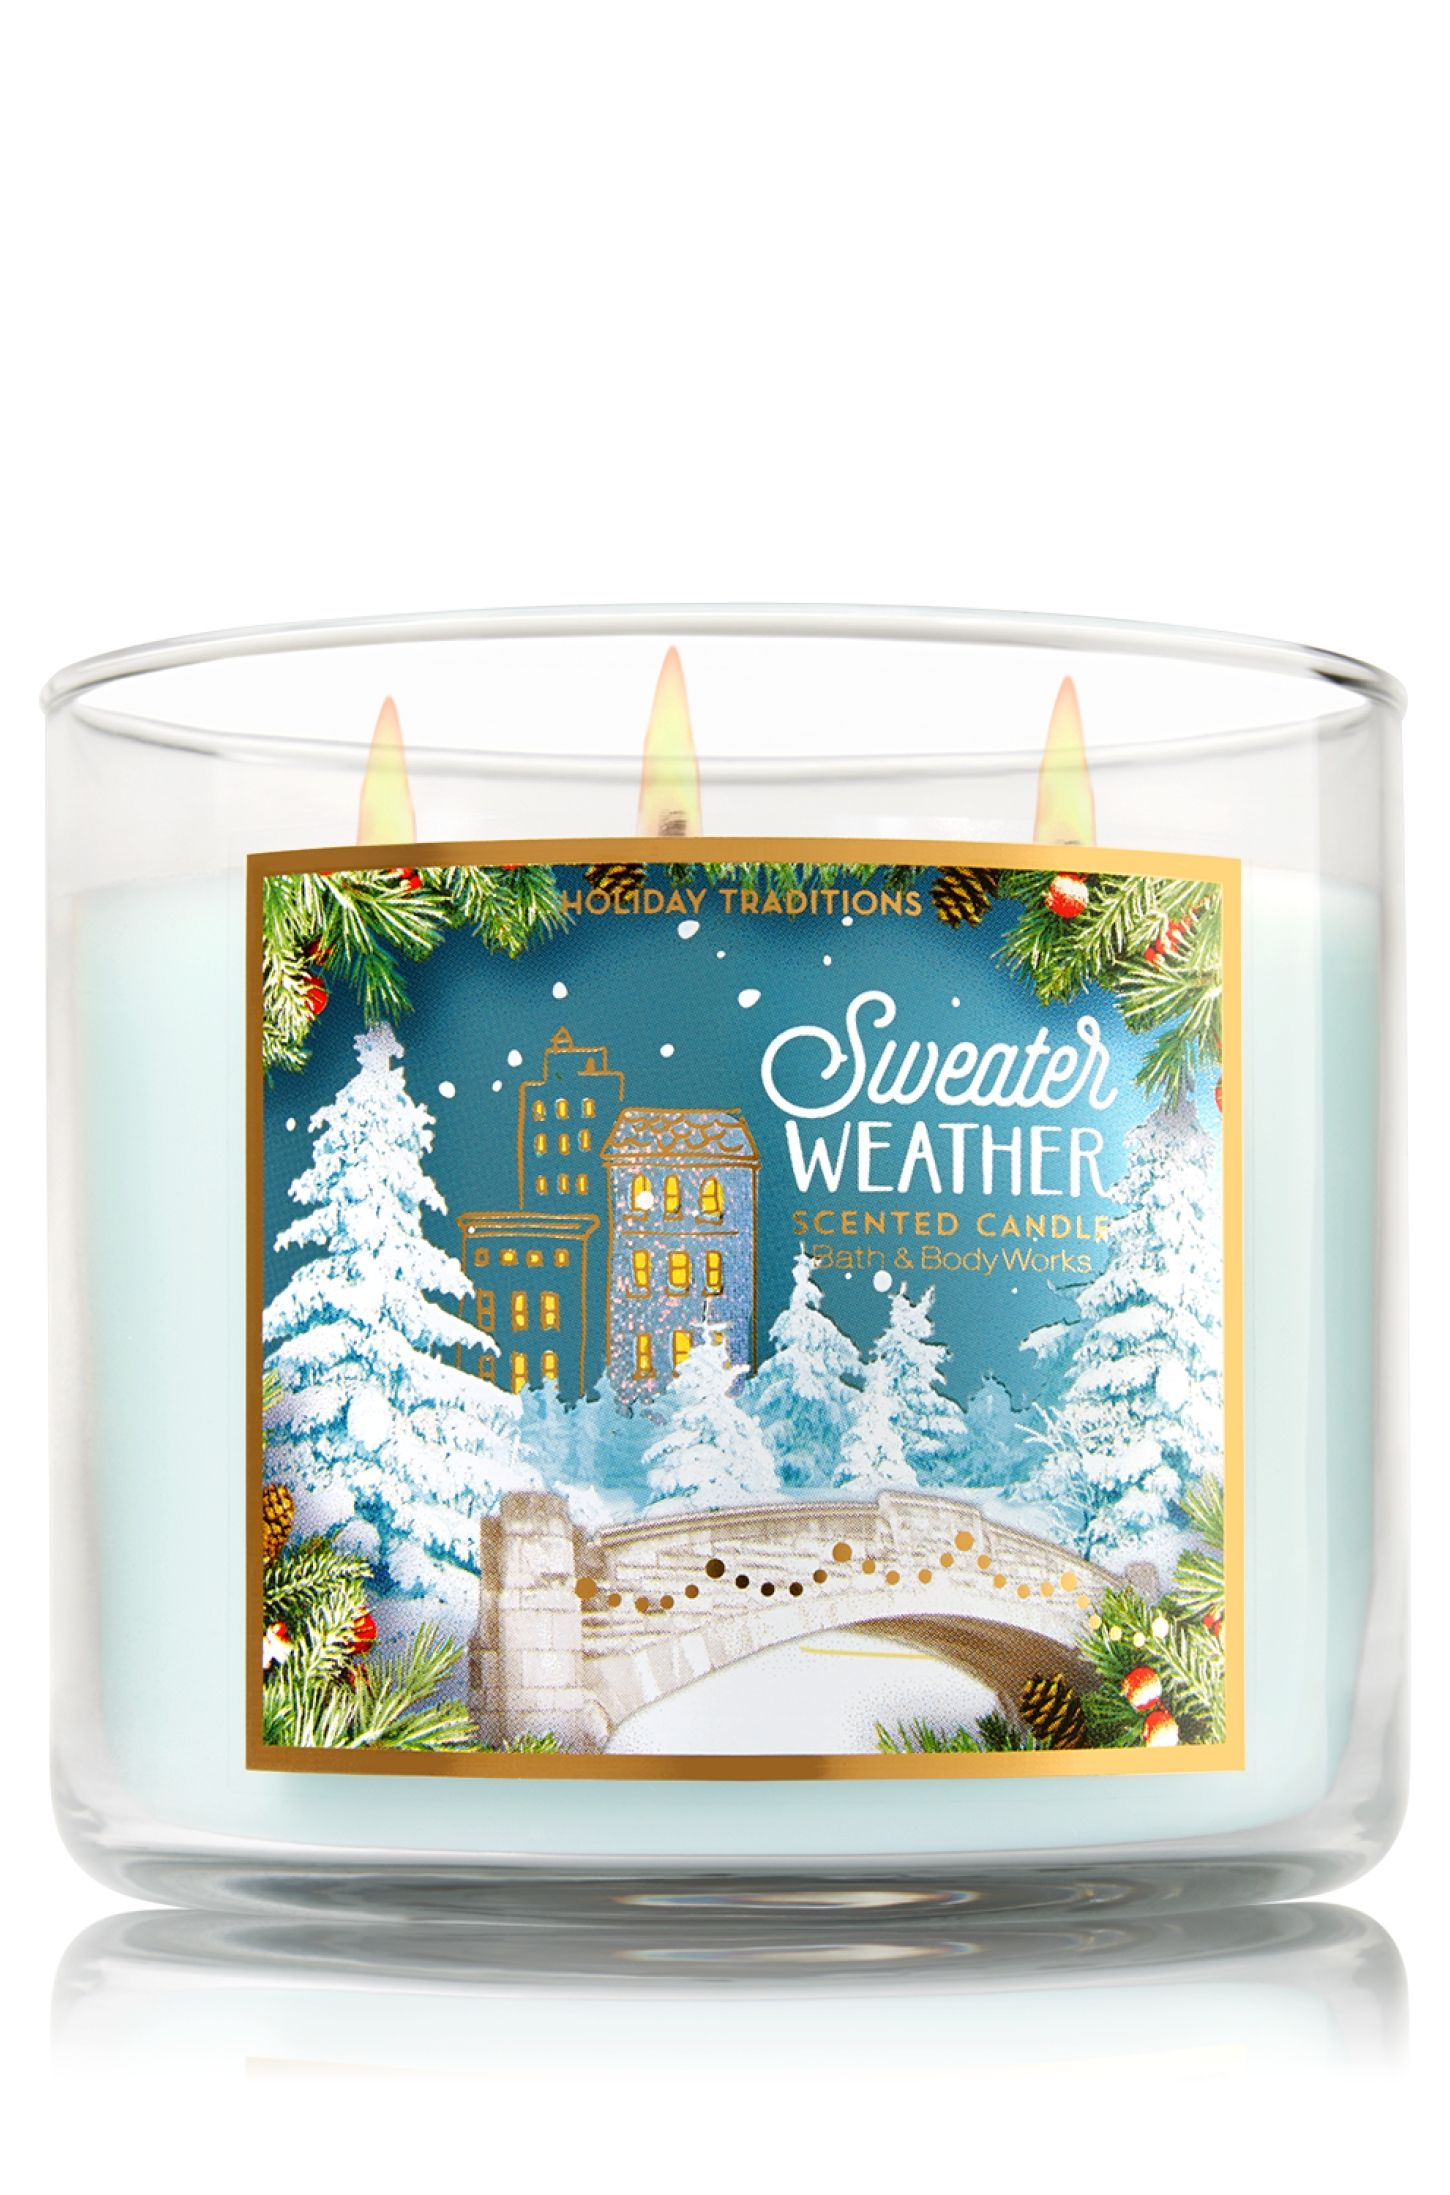 Sweater Weather 3 Wick Candle Home Fragrance 1037181 Bath Body